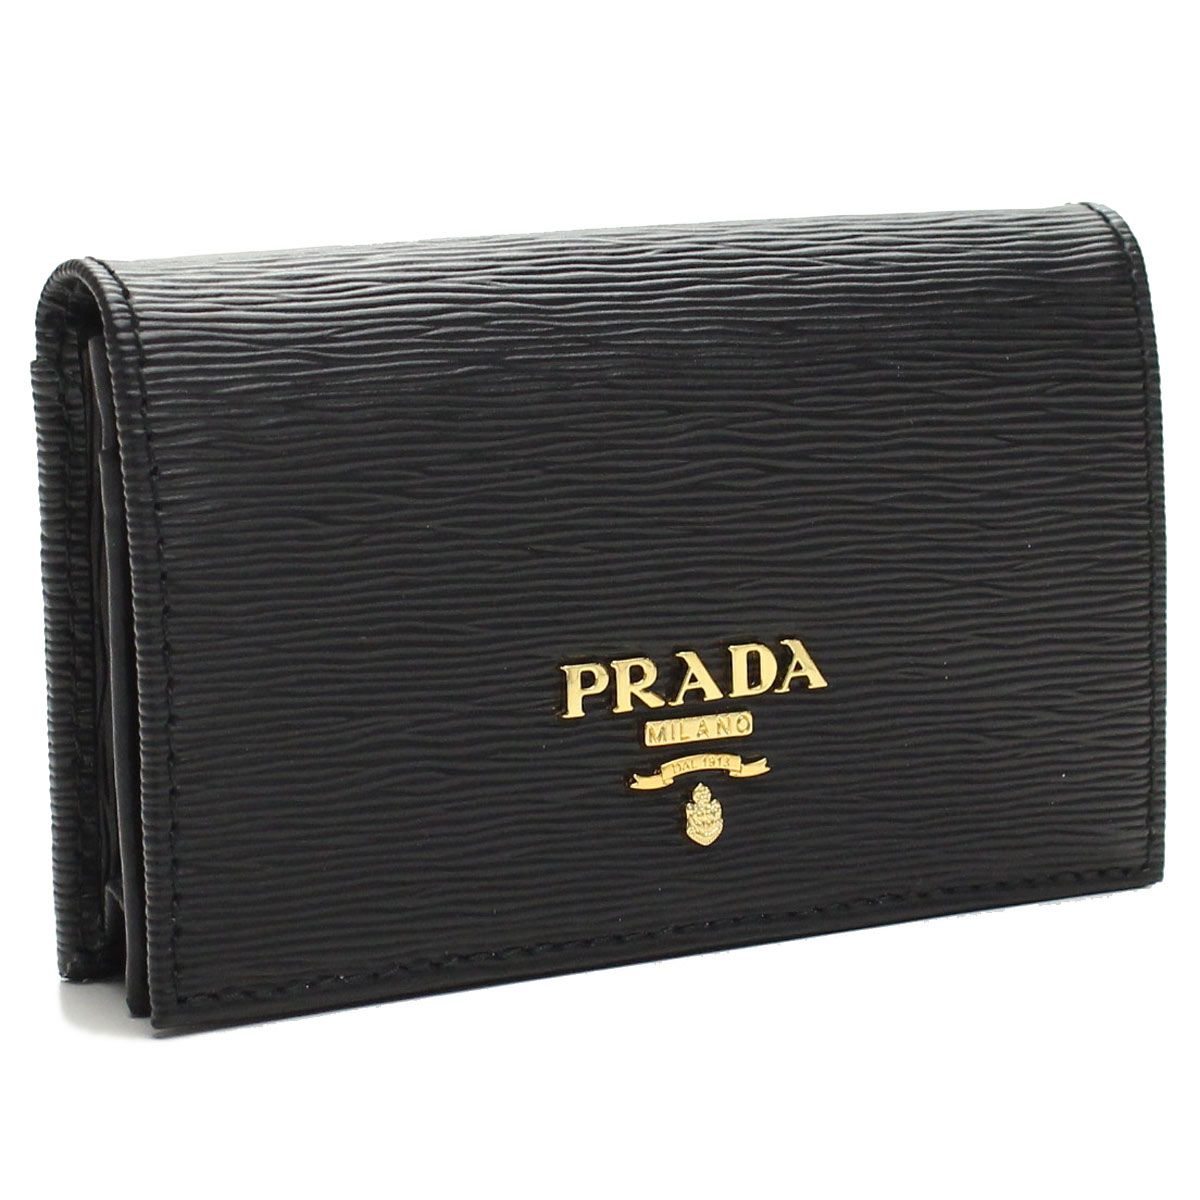 Prada Saffiano Leder Business Card Holder Mit Prada Saffiano